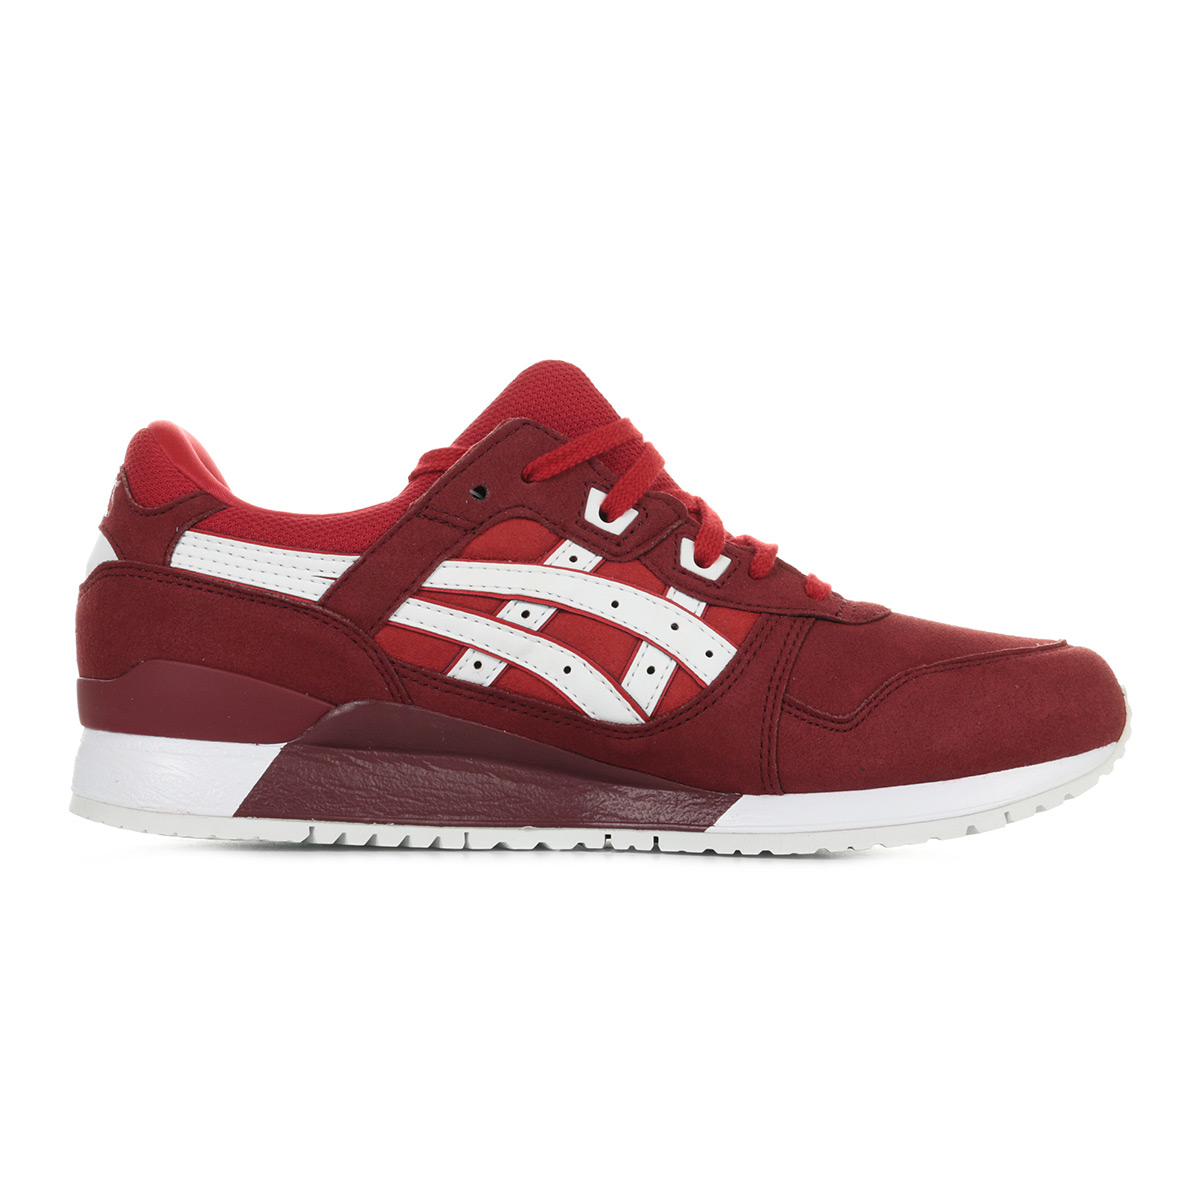 8931ac8b9b73 Chaussures Baskets Asics homme Gel Lyte III taille Rouge Synthétique ...